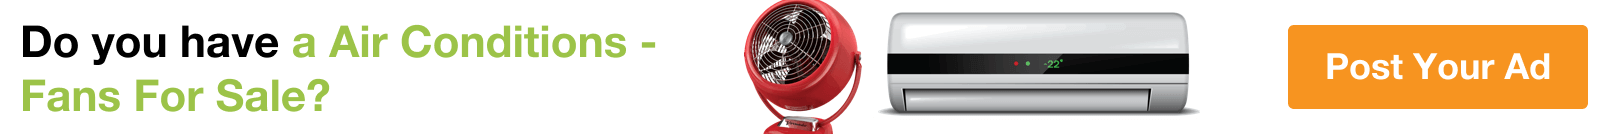 Fuji Air Conditioners - Fans for Sale in Saudi Arabia